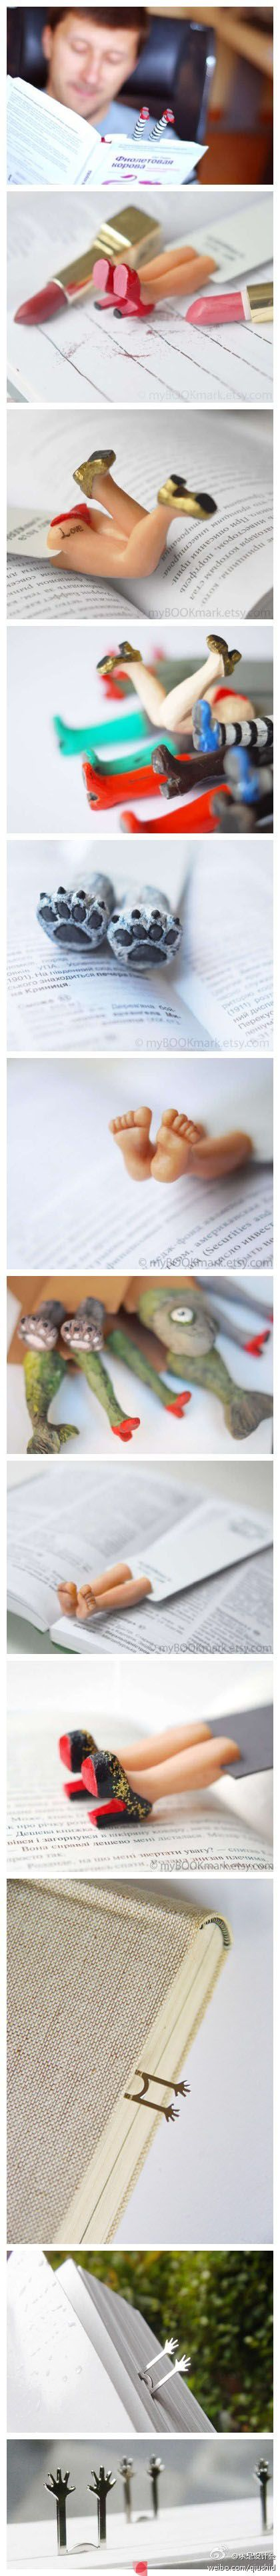 design a original bookmark that reflects the story genre ...